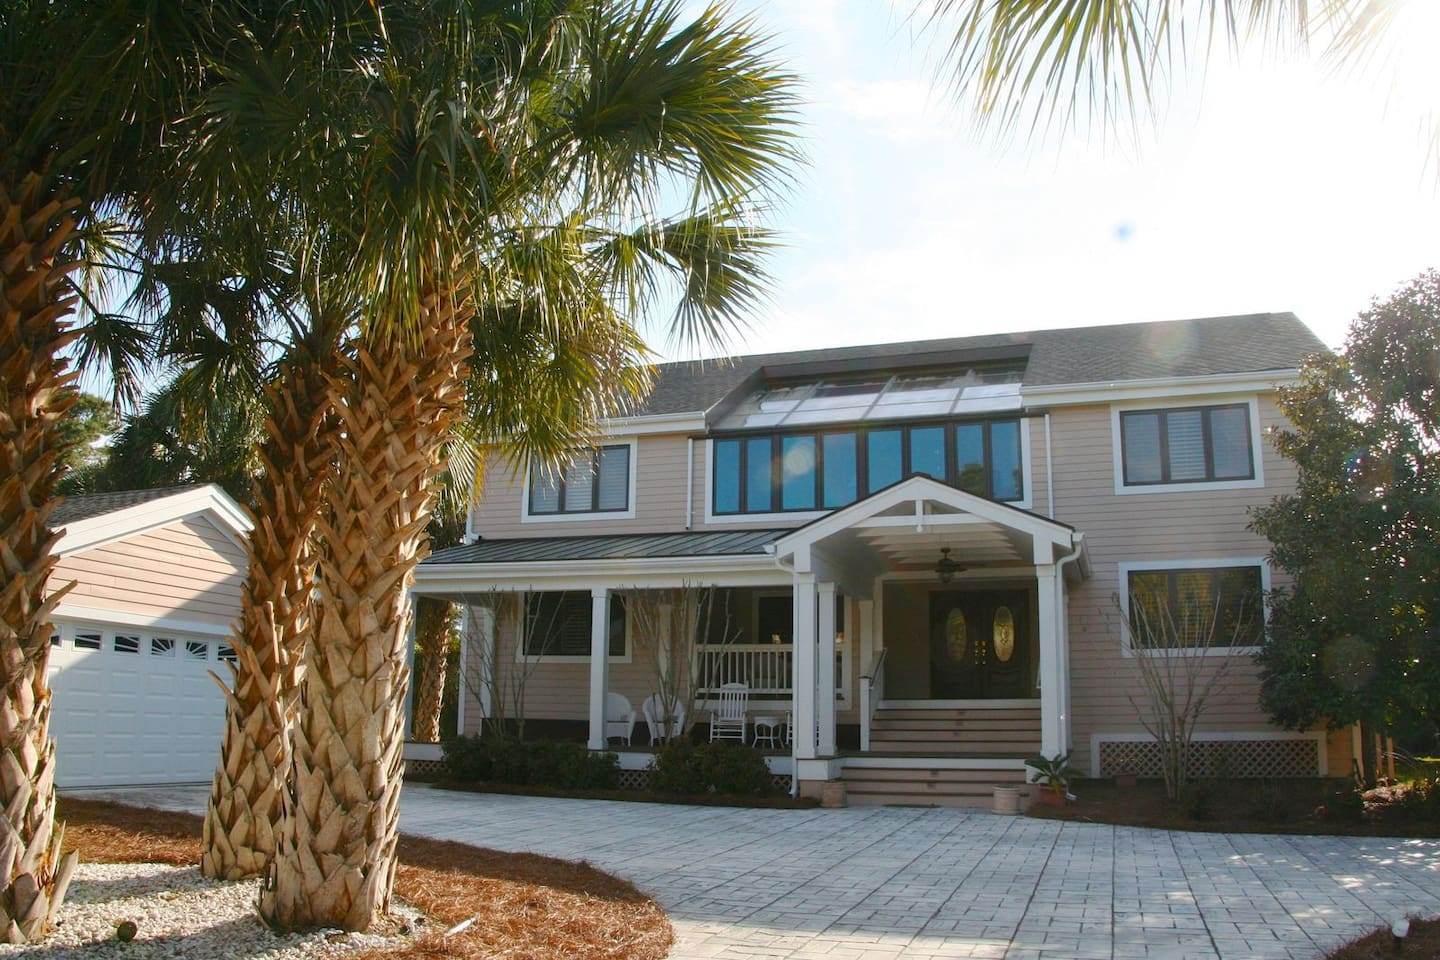 This large home near the beach that is perfect for your family vacation!